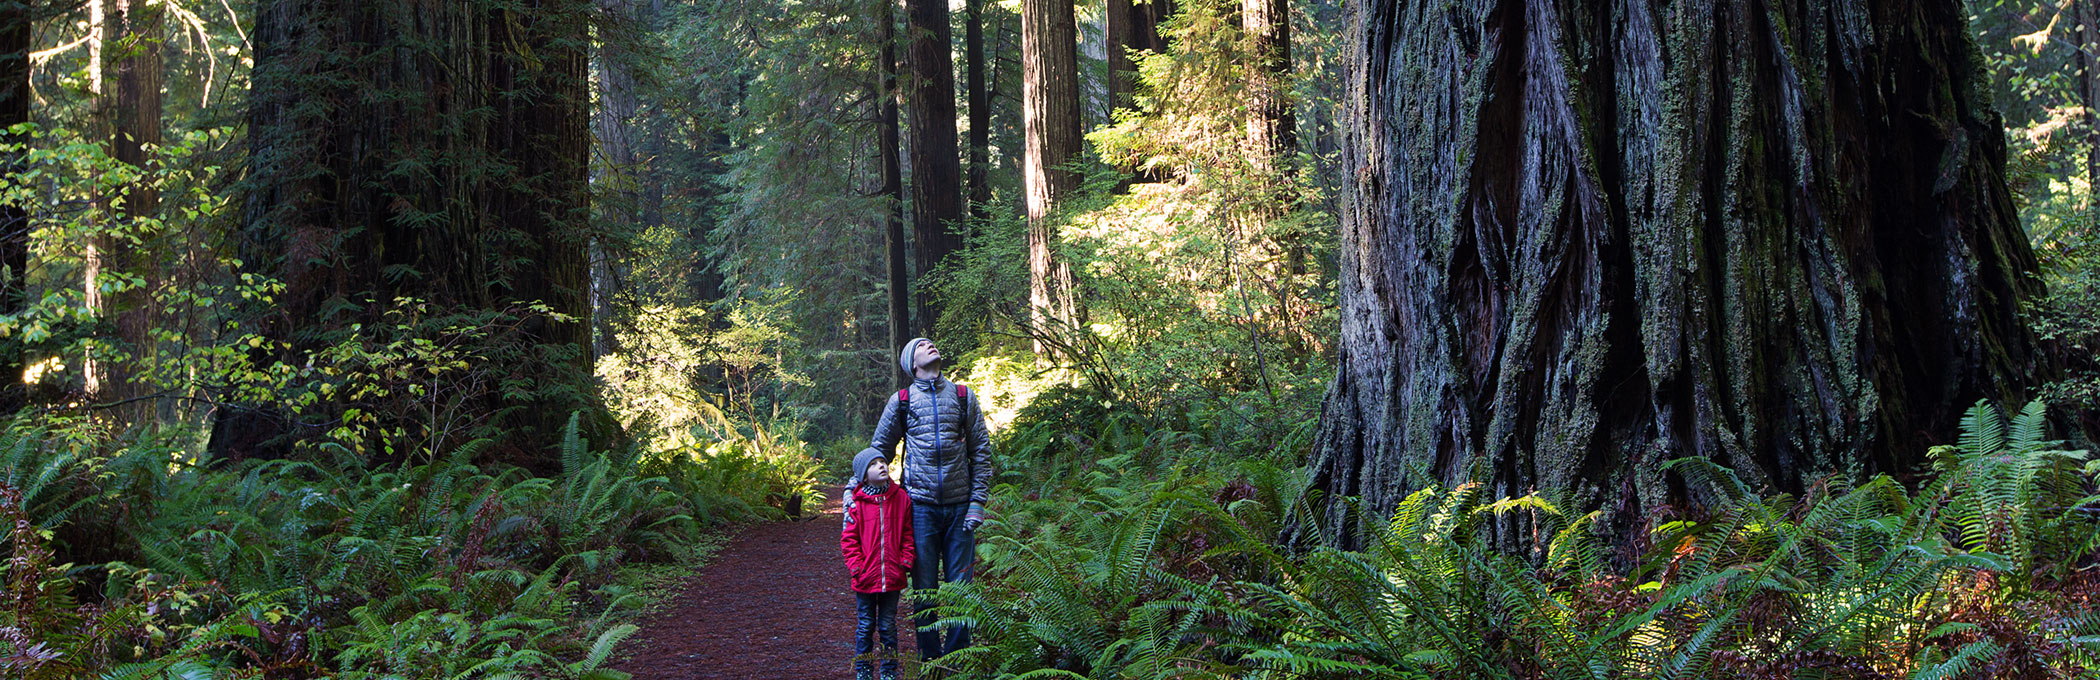 man and child hiking among redwoods